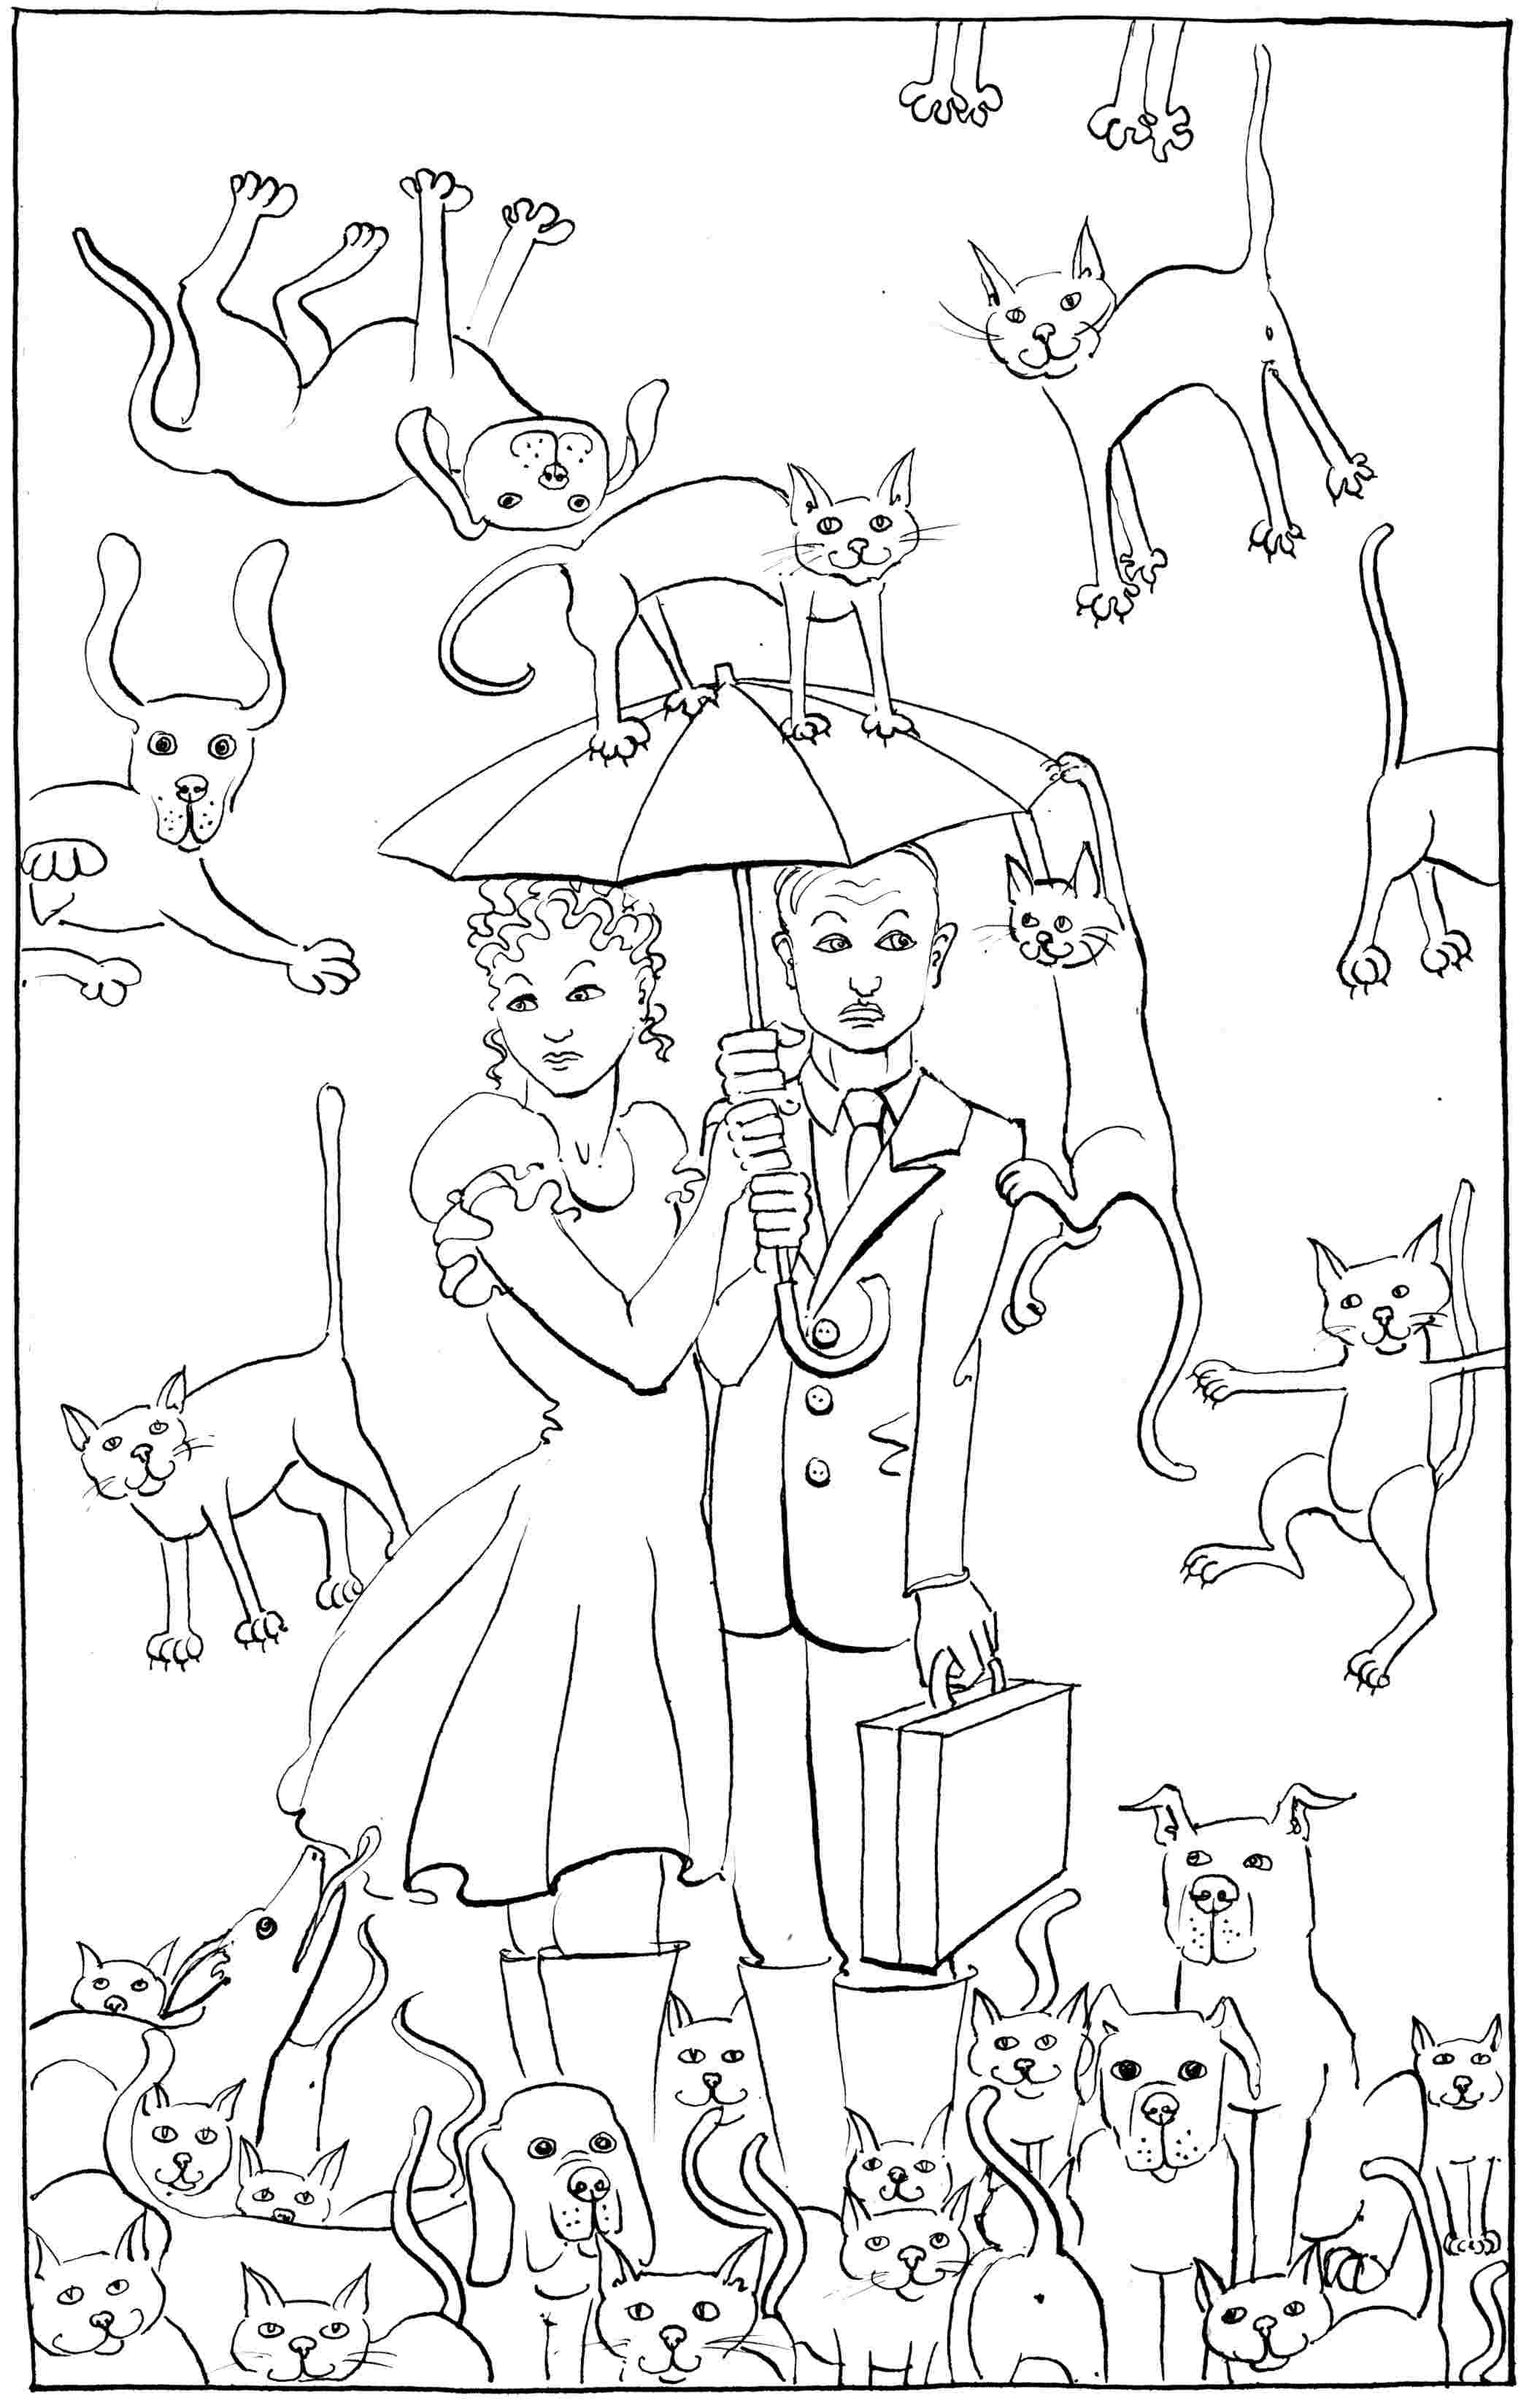 Raining Cats and Dogs - colouring-in drawing - to download, right click and save, print out and colour in!